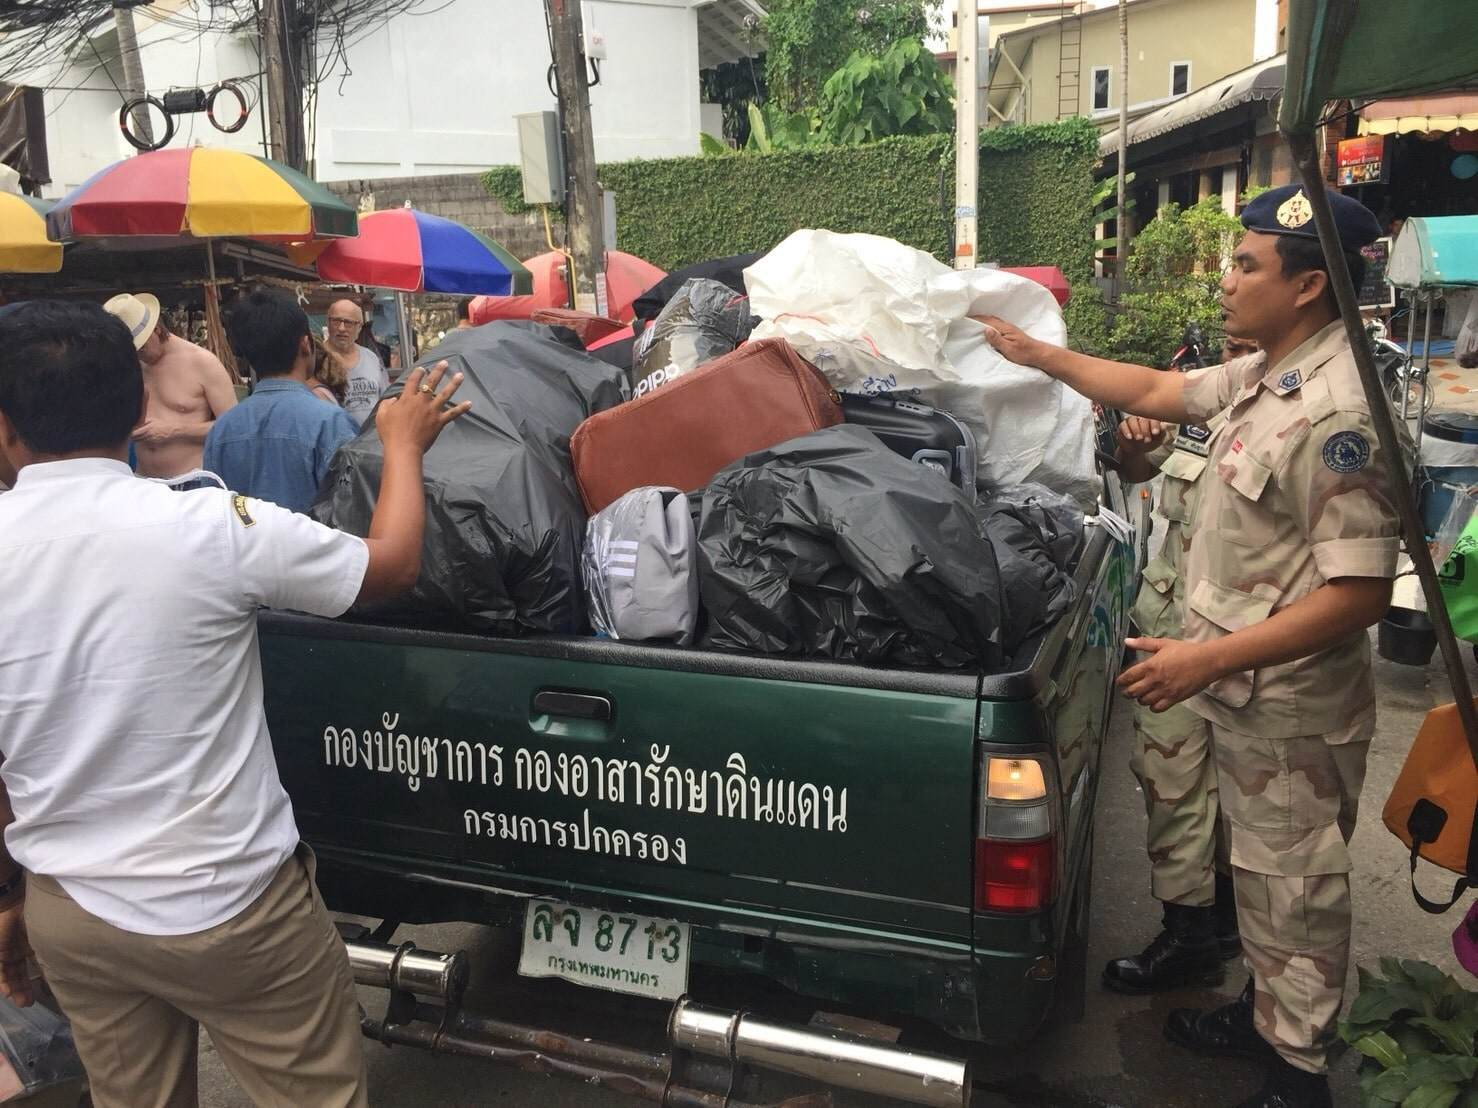 Three nabbed over fake goods and items seized in Karon | The Thaiger